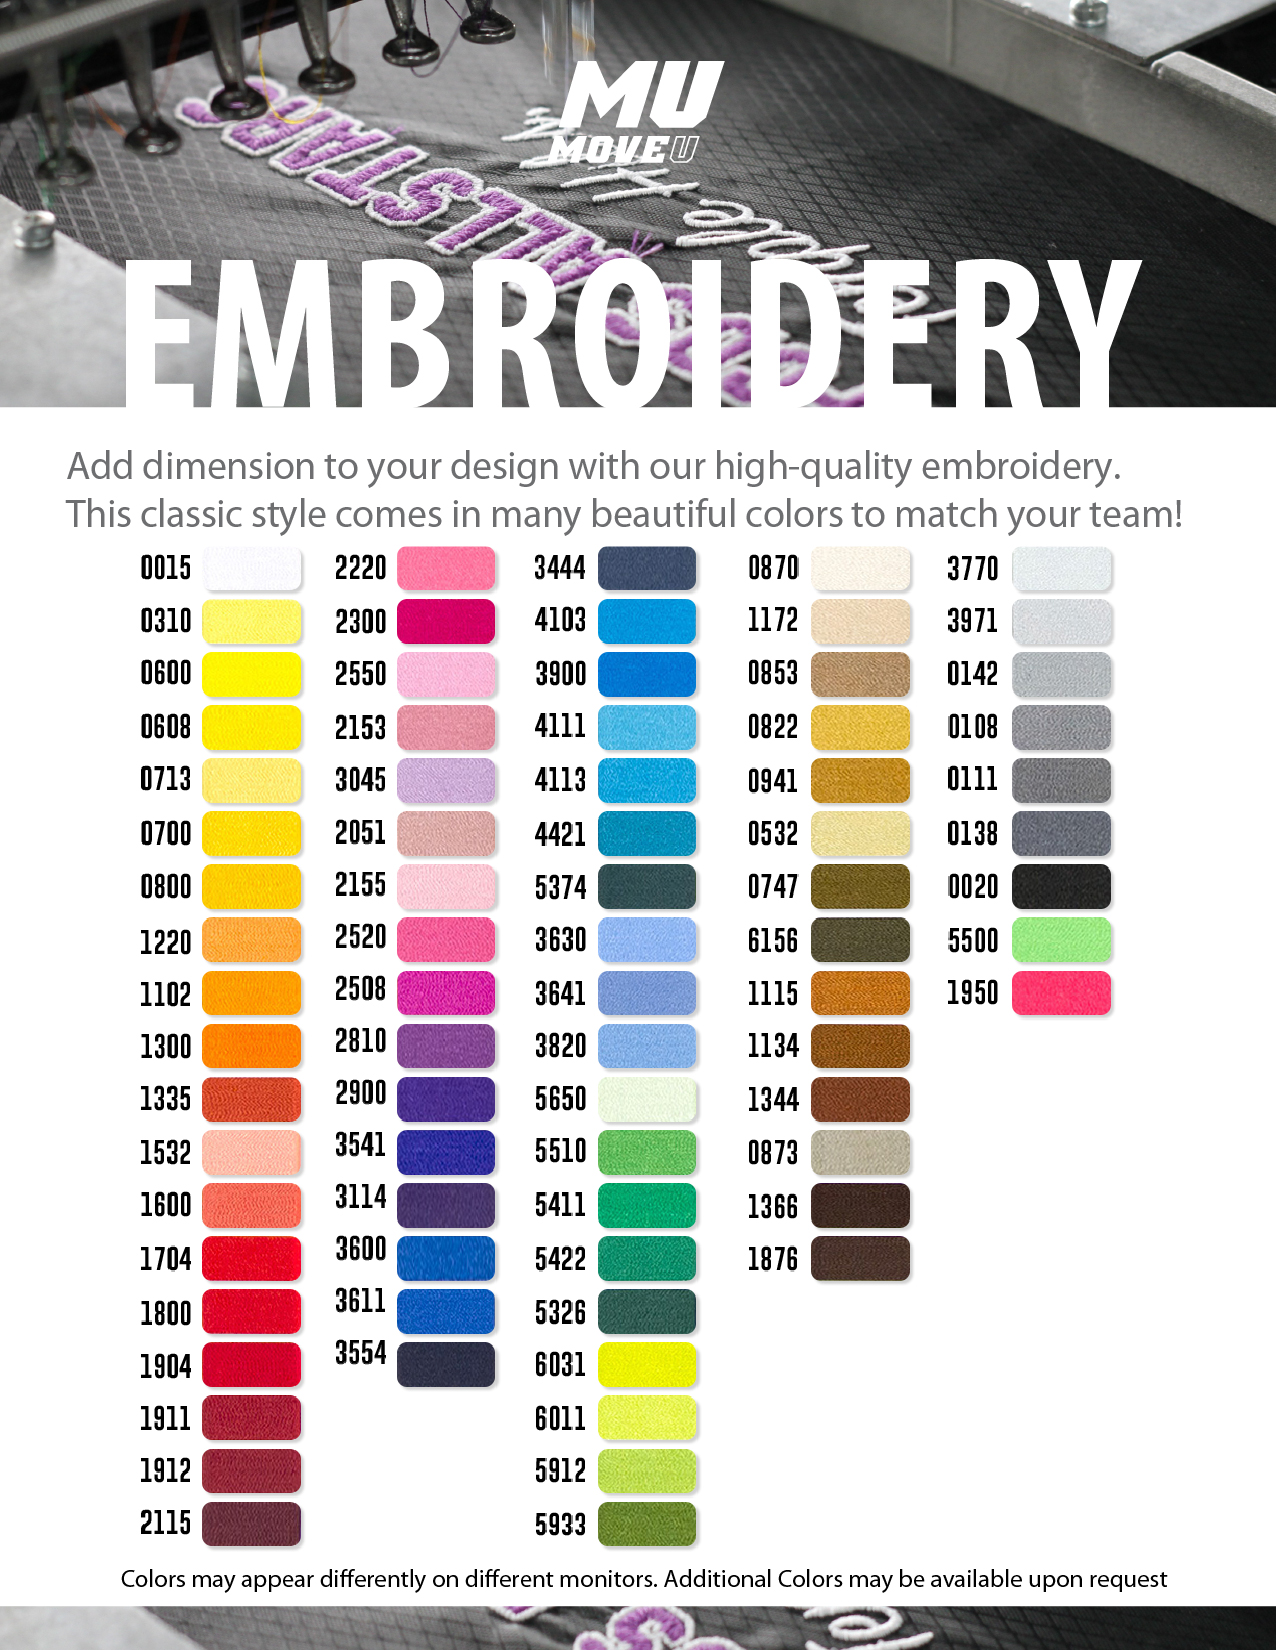 embroidery-color-swatches